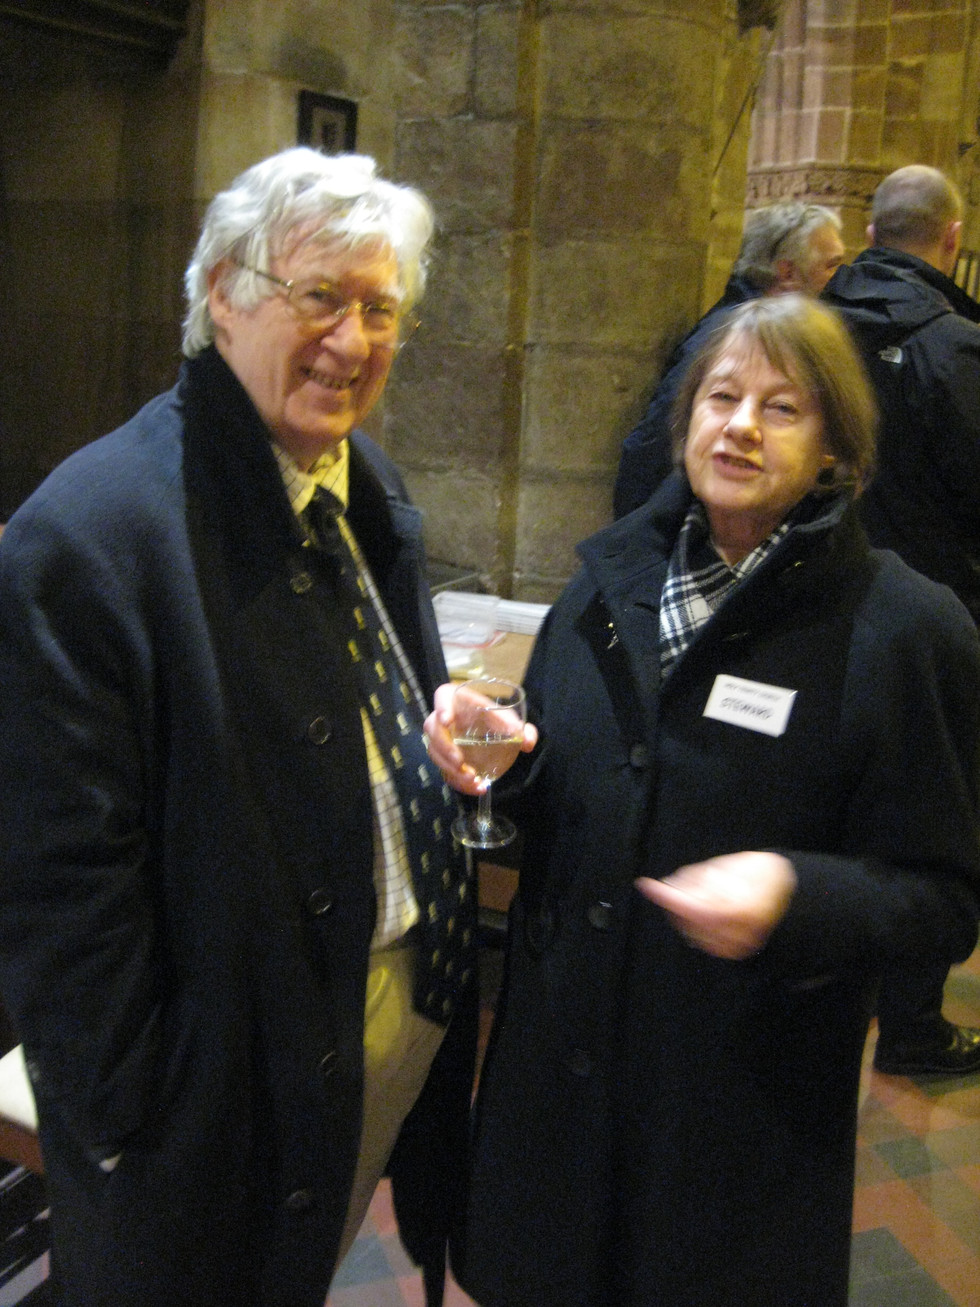 David Jacques and maggie barclay-Cooke.JPG